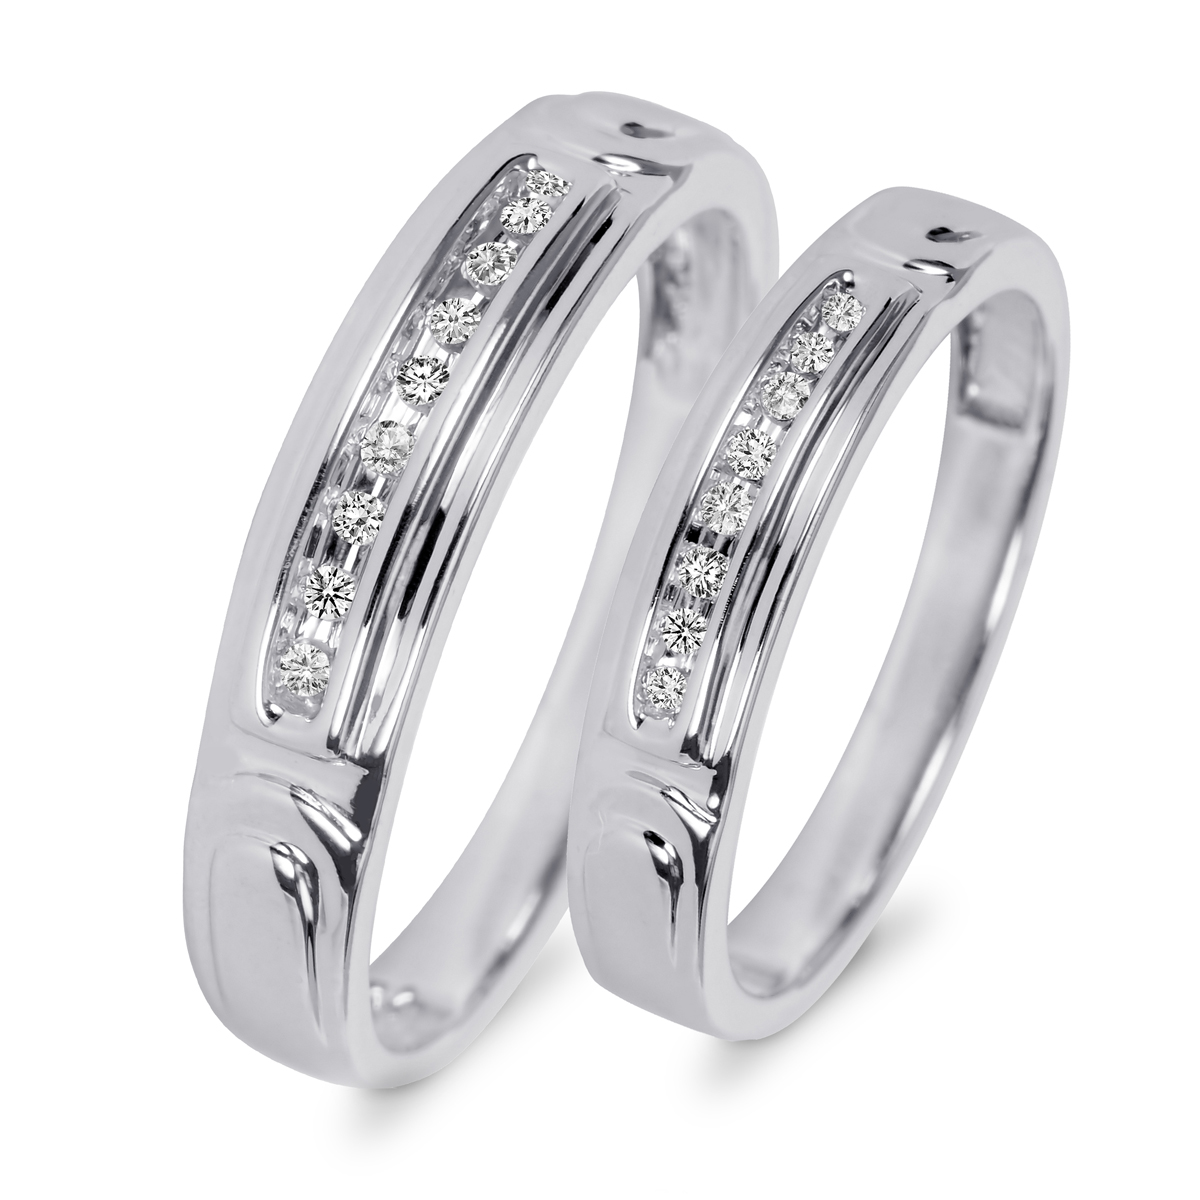 T W Diamond His And Hers Wedding Rings 10k White Gold